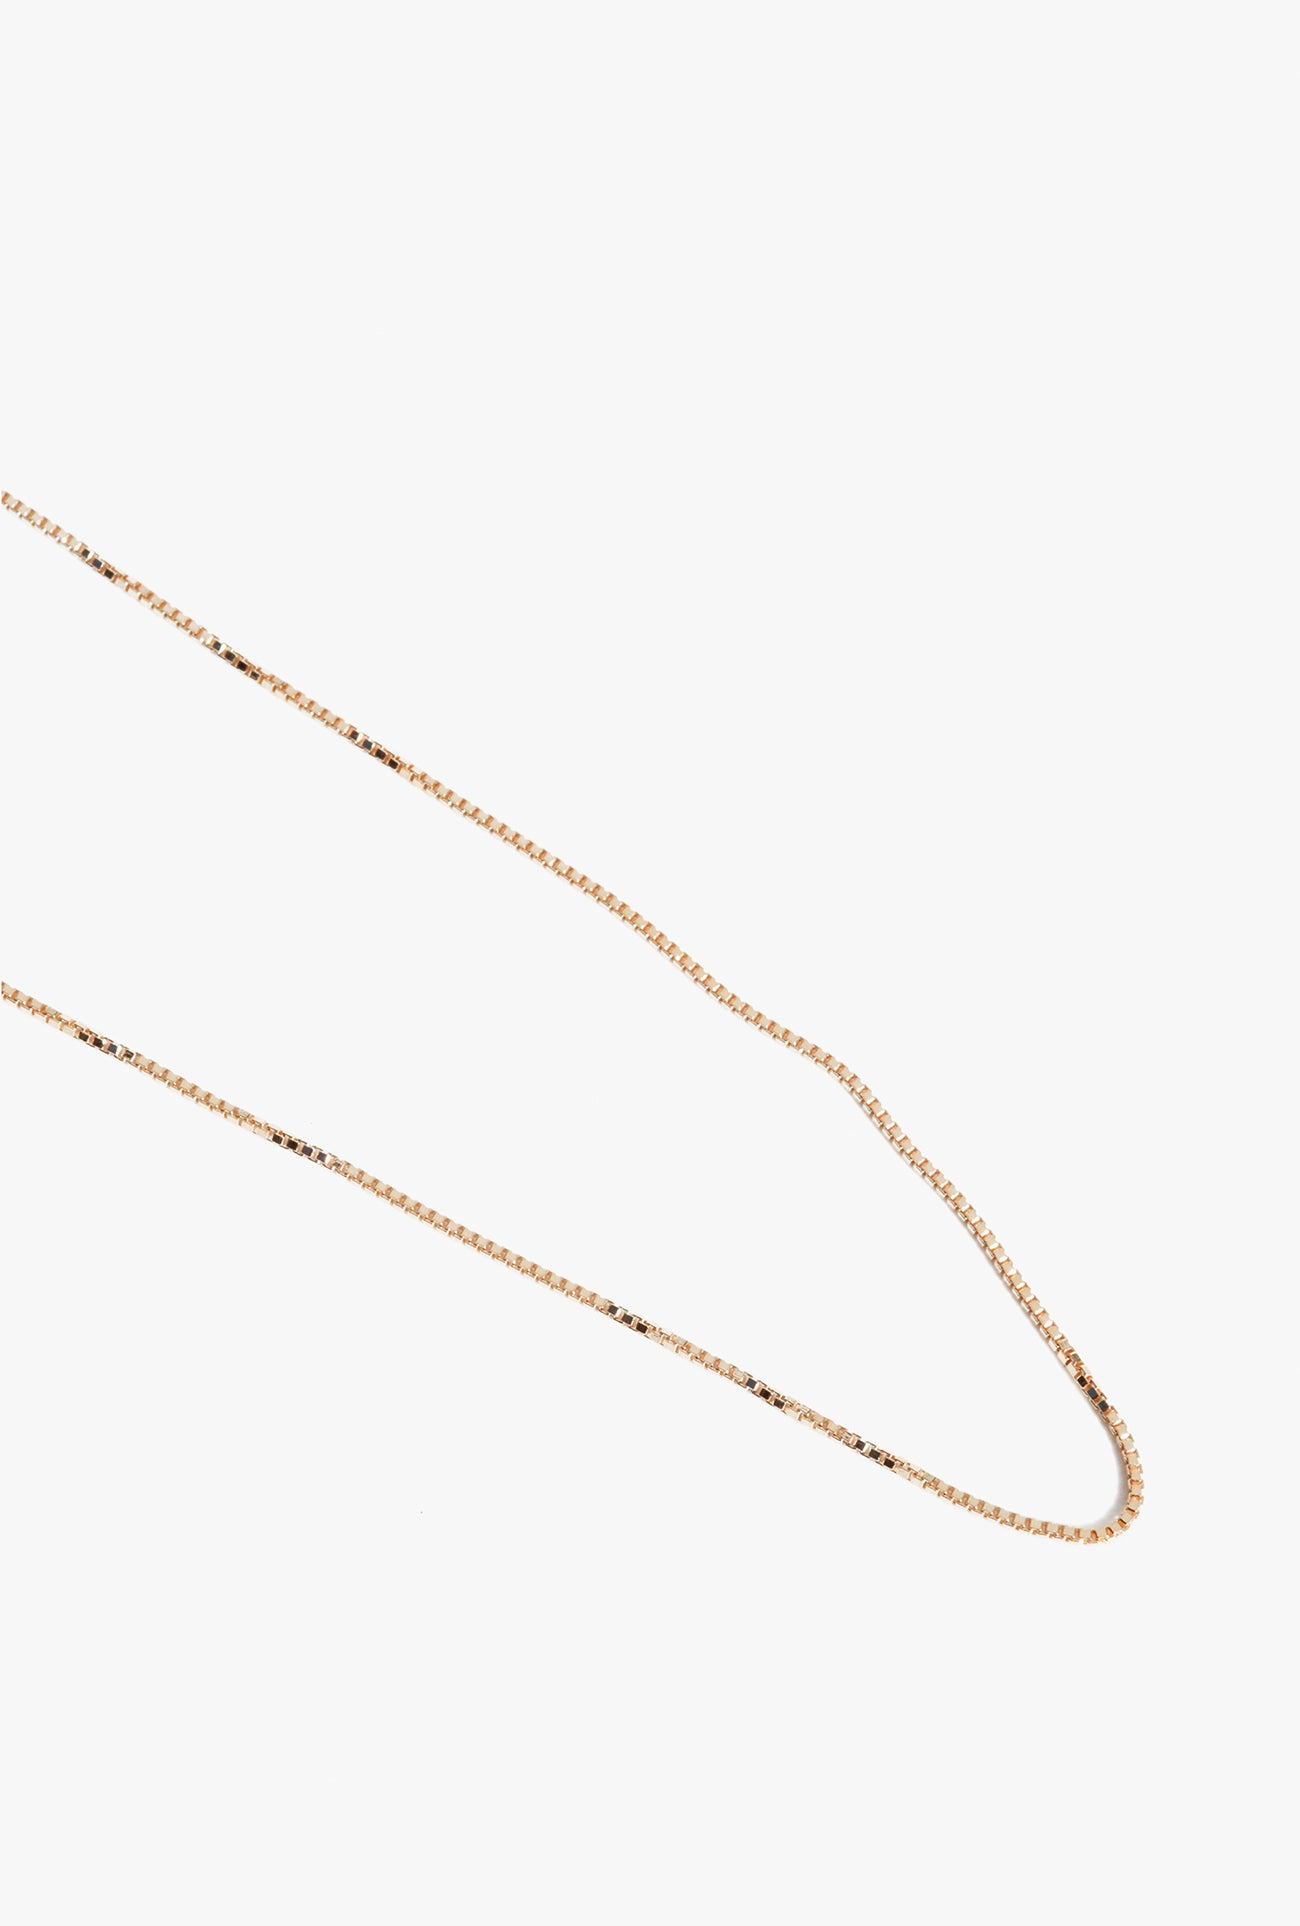 Clea Chain Necklace